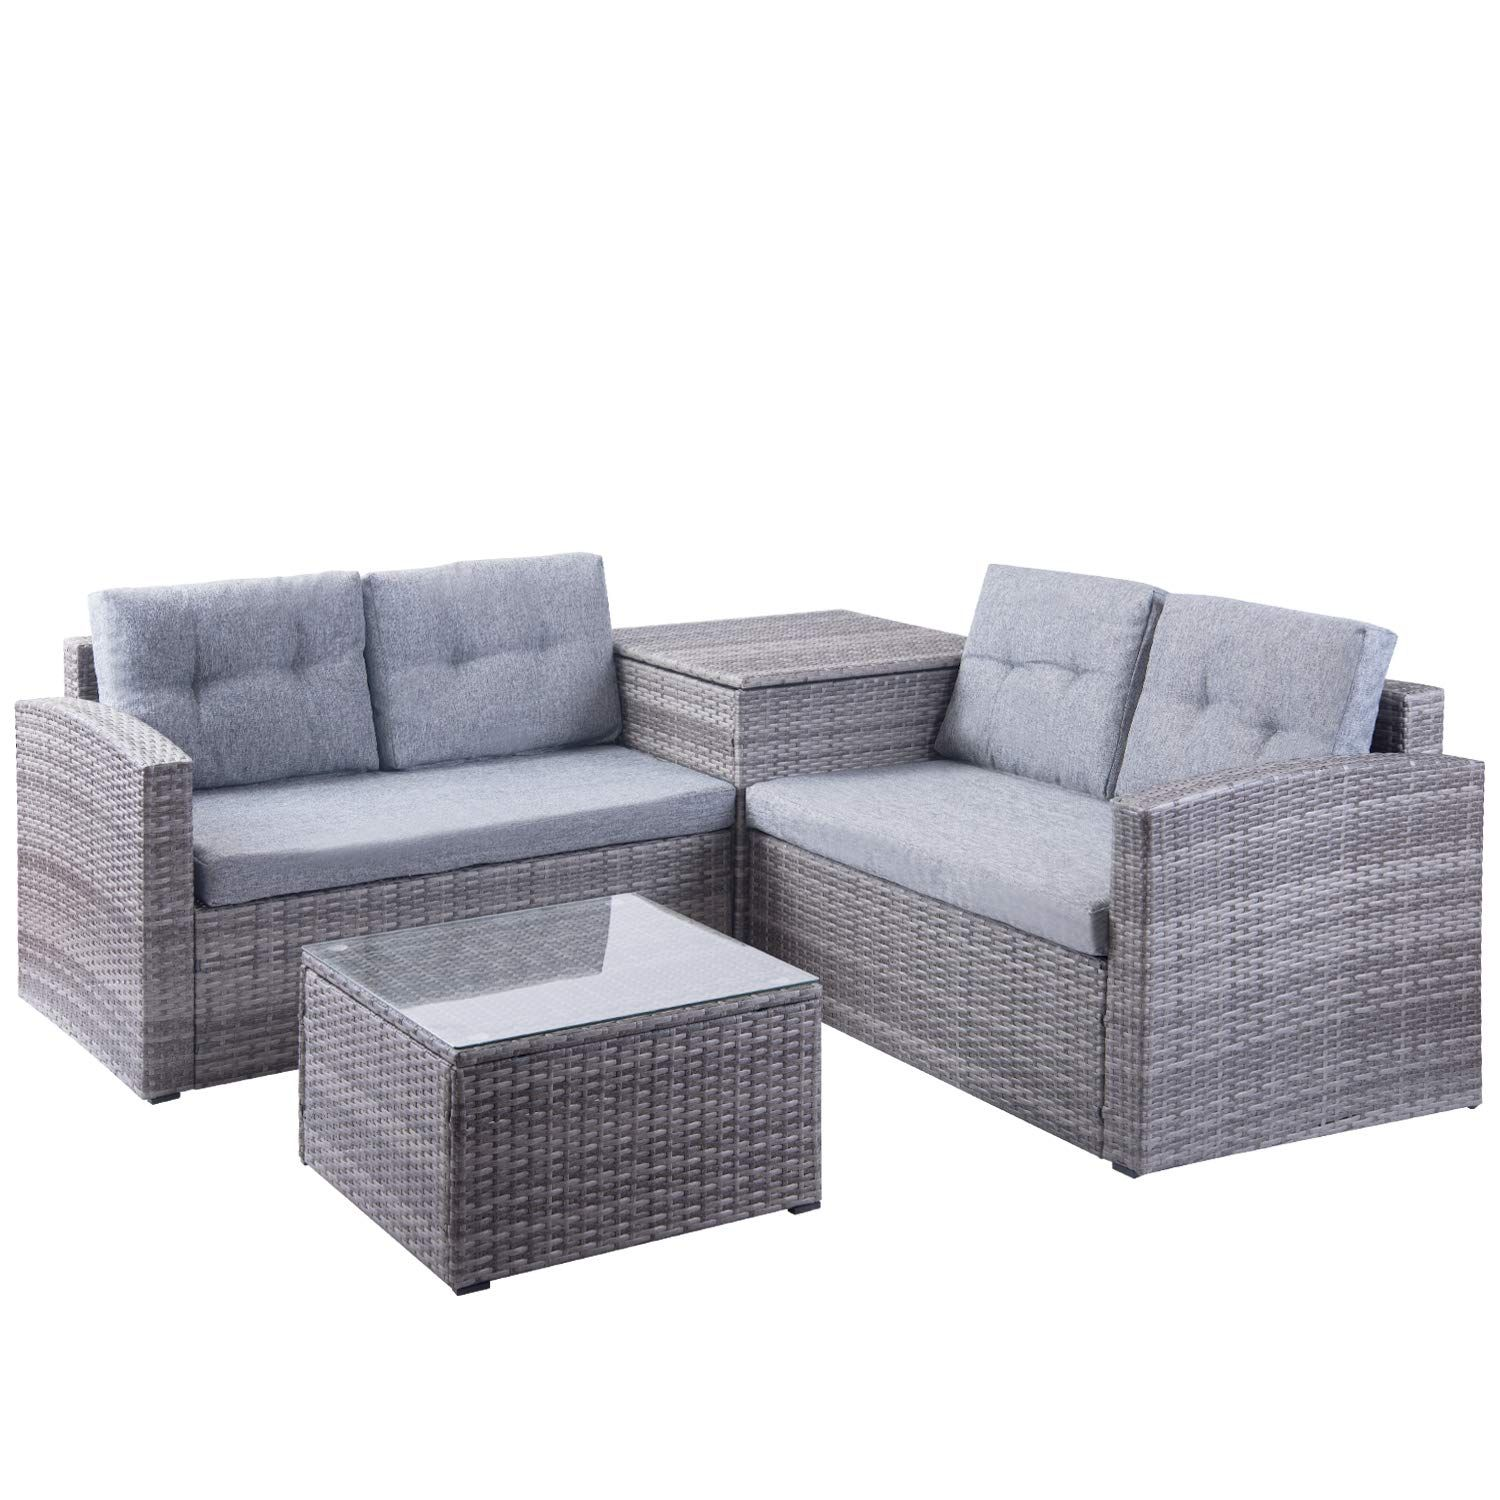 Leisure Zone Patio Furniture Set 3 Piece Pe Rattan Wicker Chairs